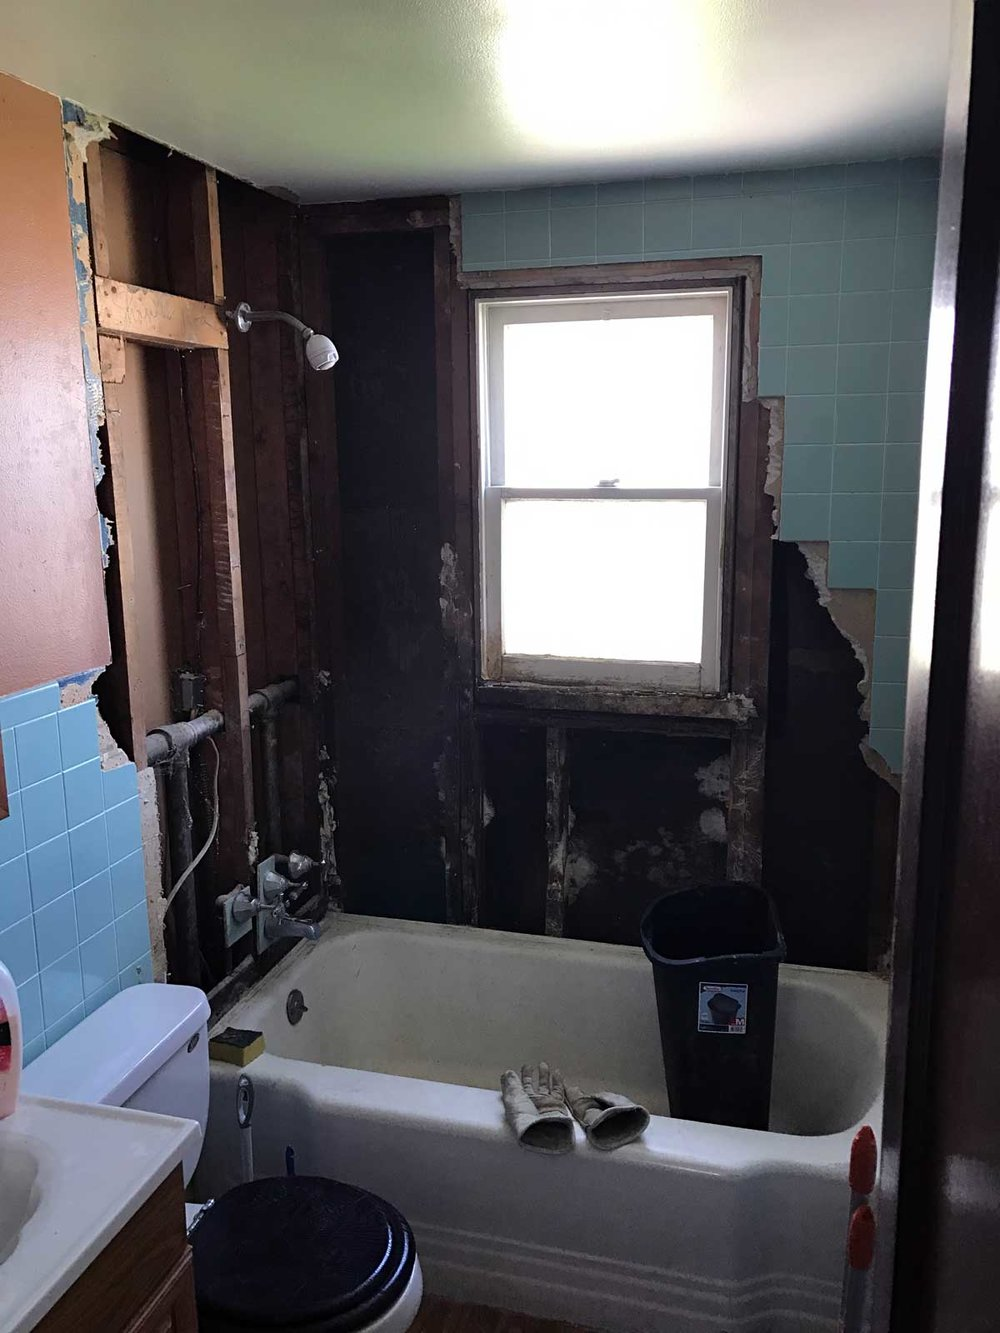 15 Day Bathroom Renovation Demolition 01